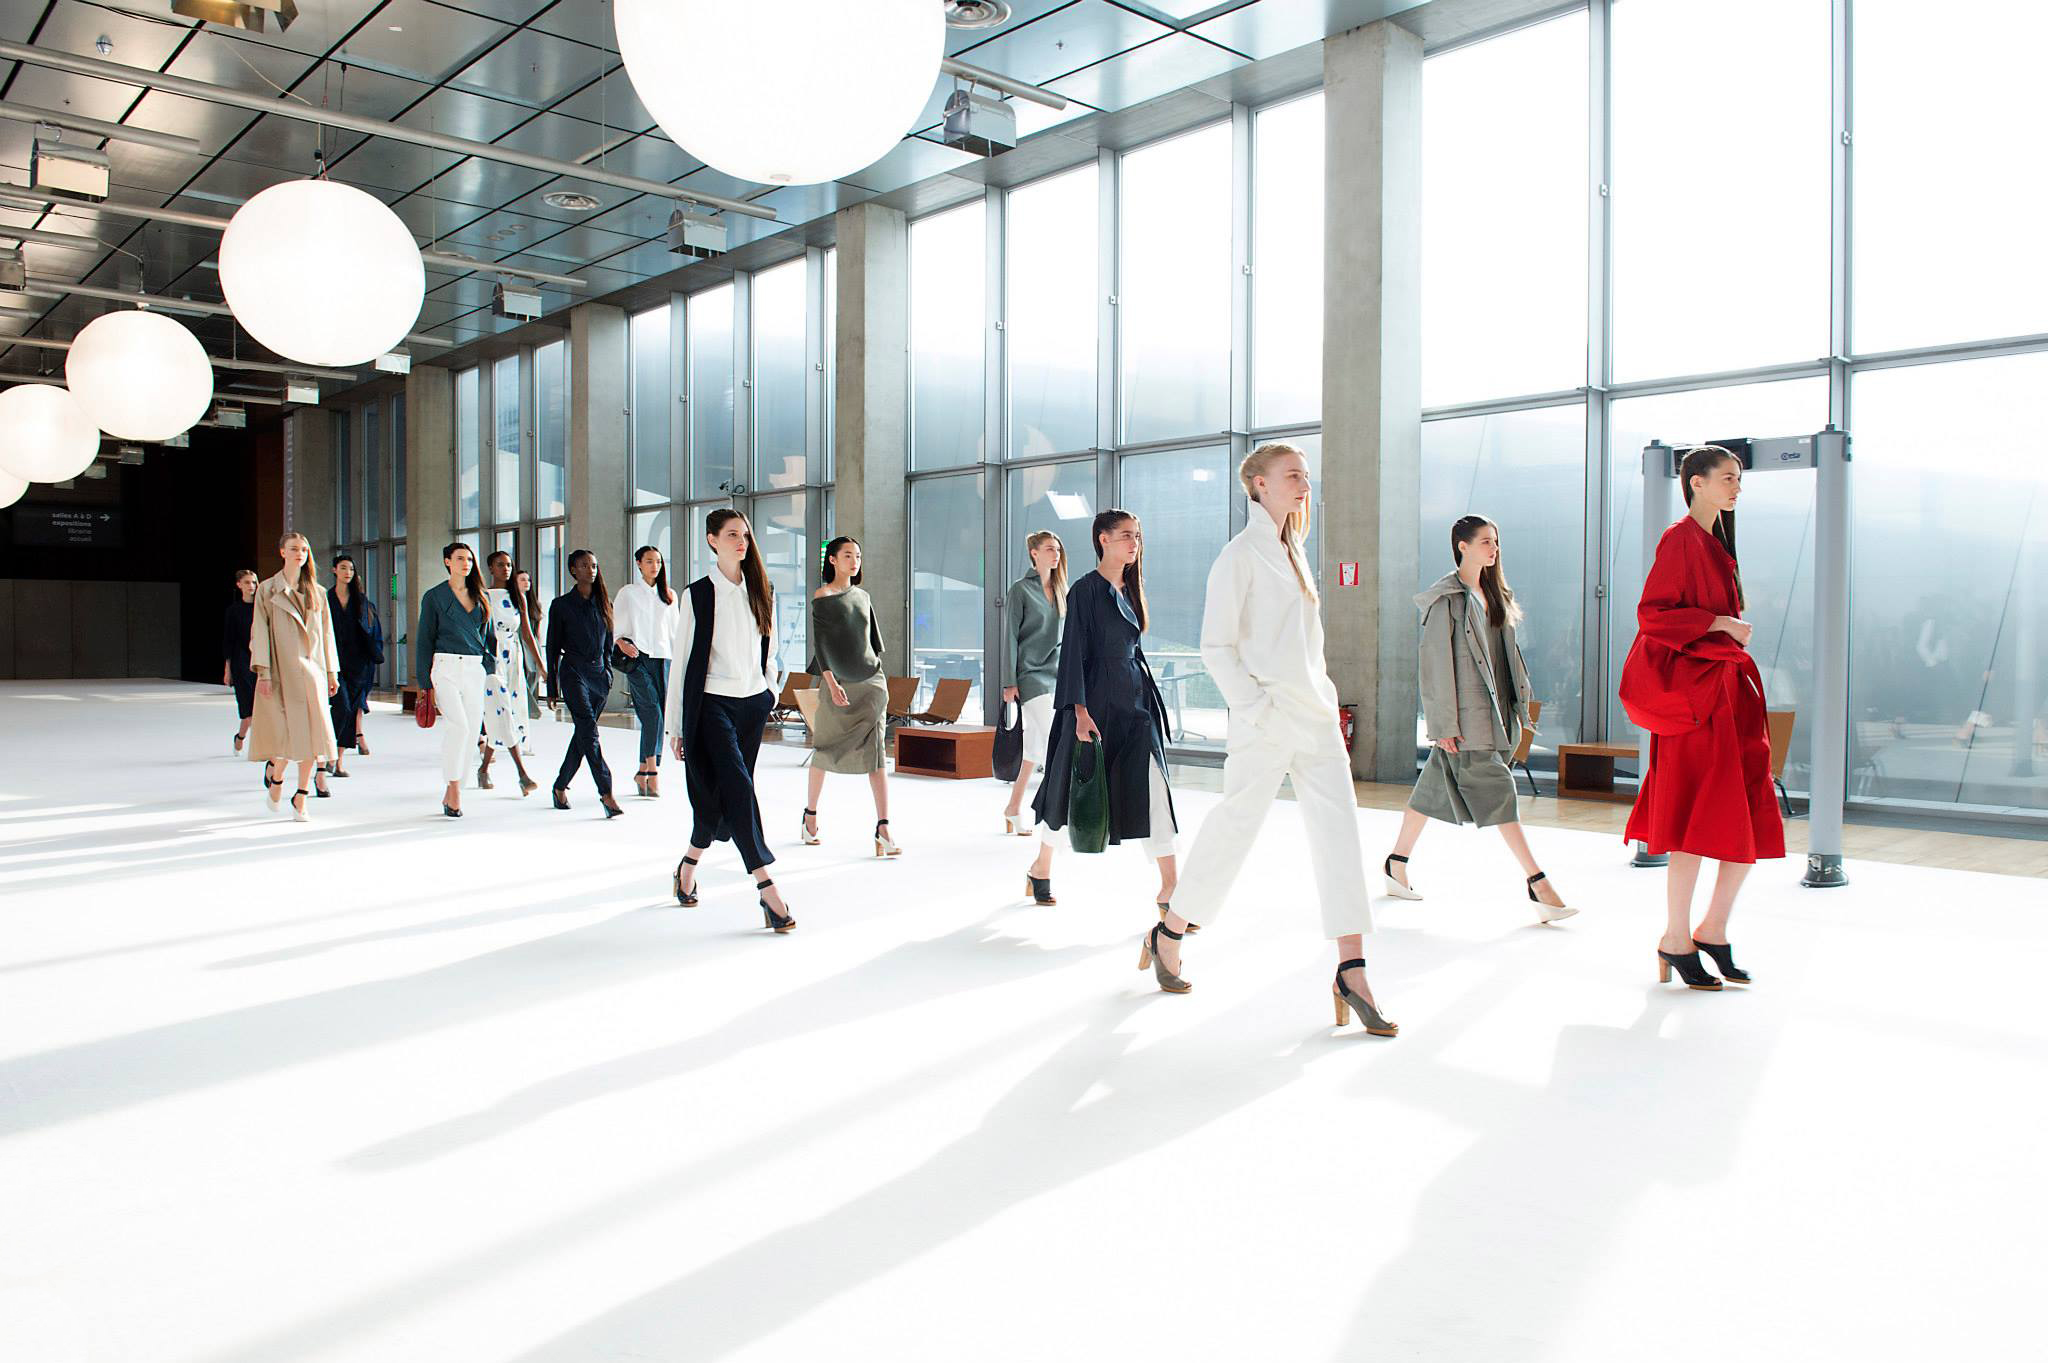 PFW: Lemaire's Liaison with Uniqlo